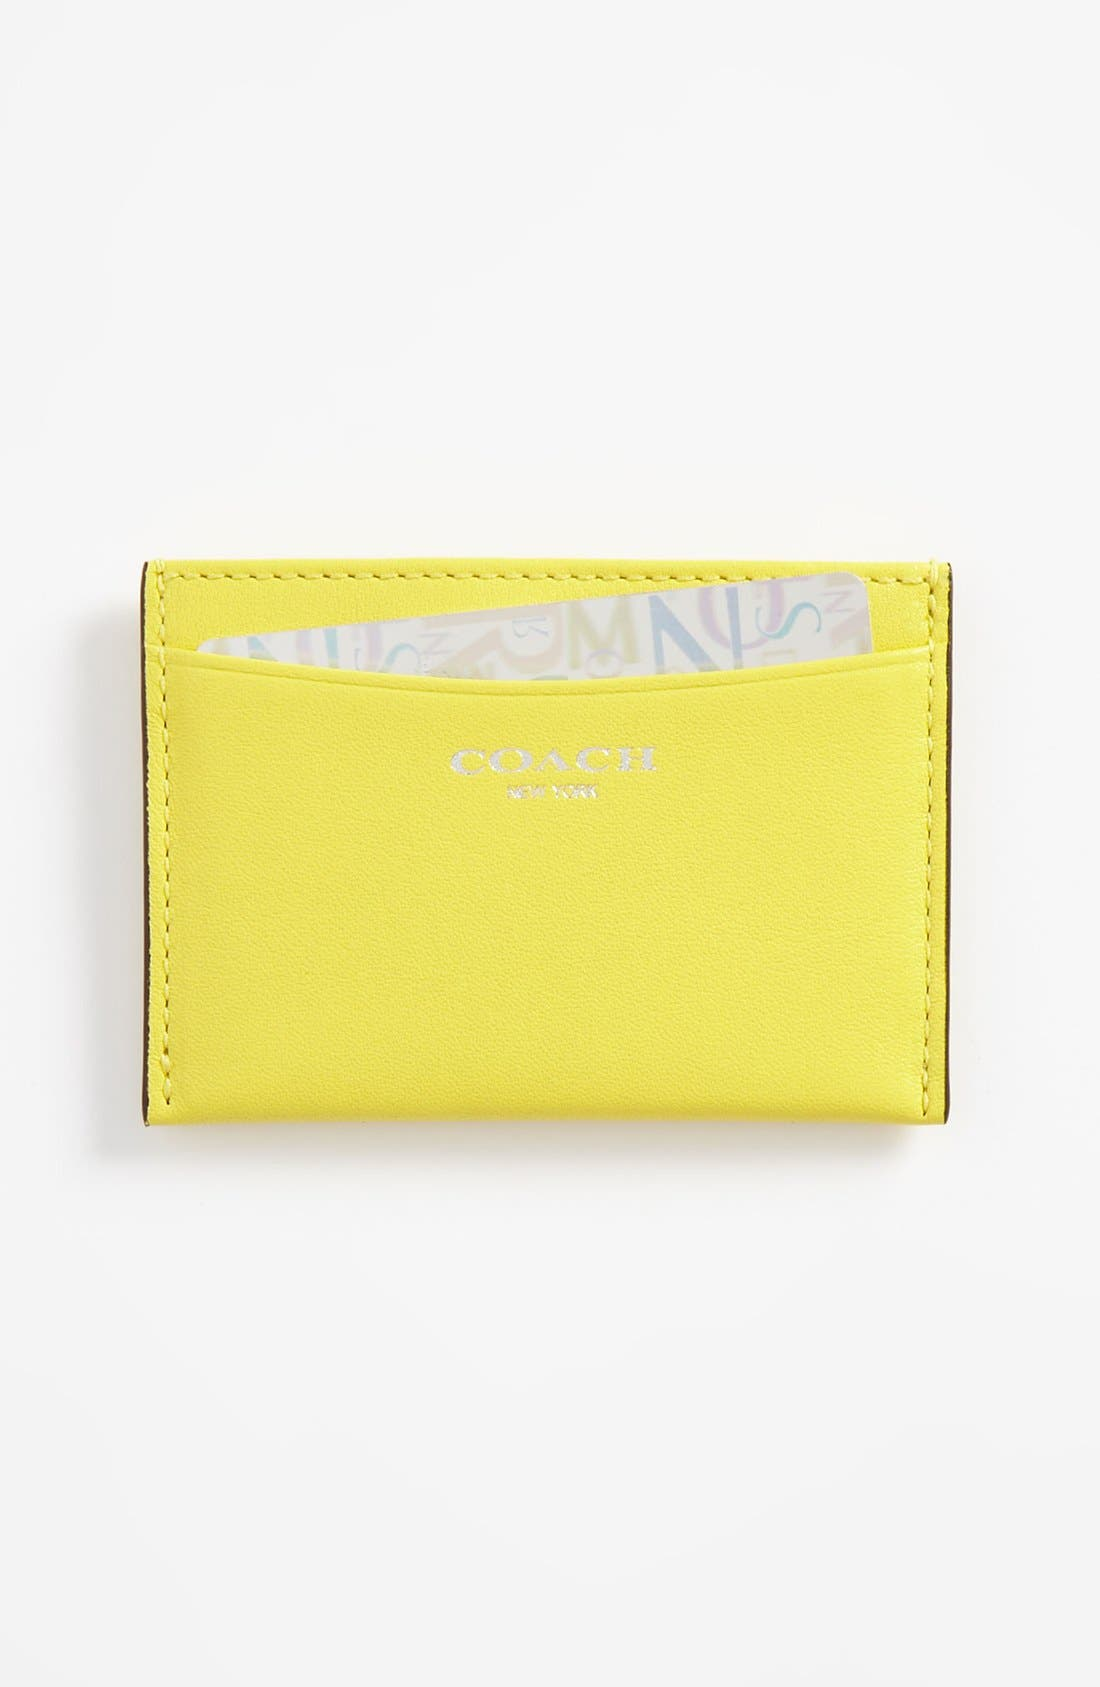 Alternate Image 1 Selected - COACH 'Legacy' Leather Card Case